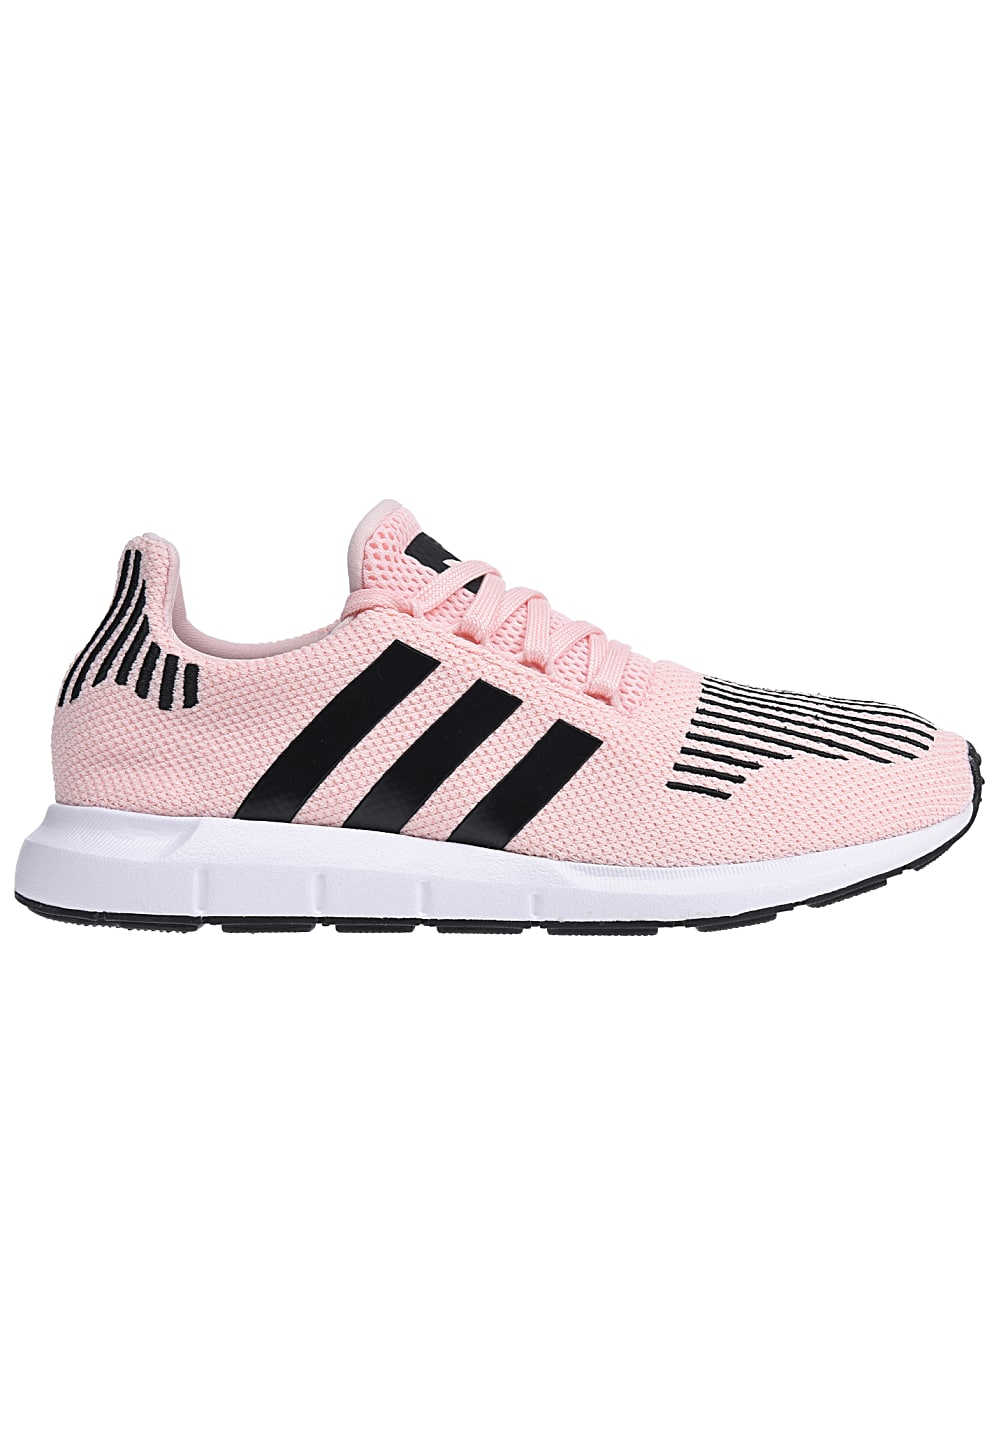 undefeated x buy designer fashion adidas Originals Swift Run - Sneaker - Pink